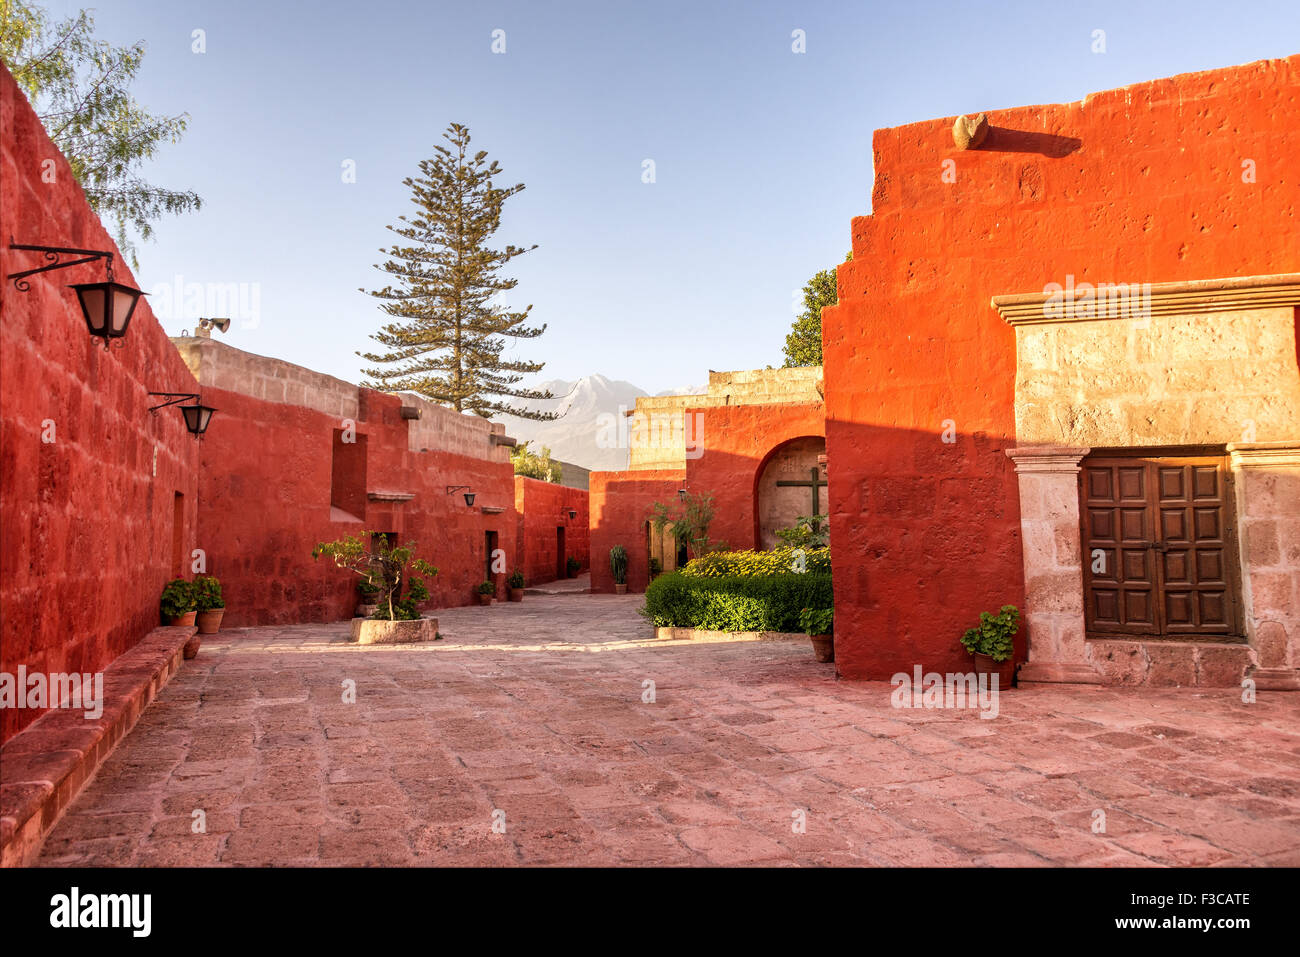 Courtyard in the Monastery of Santa Catalina in Arequipa, Peru - Stock Image